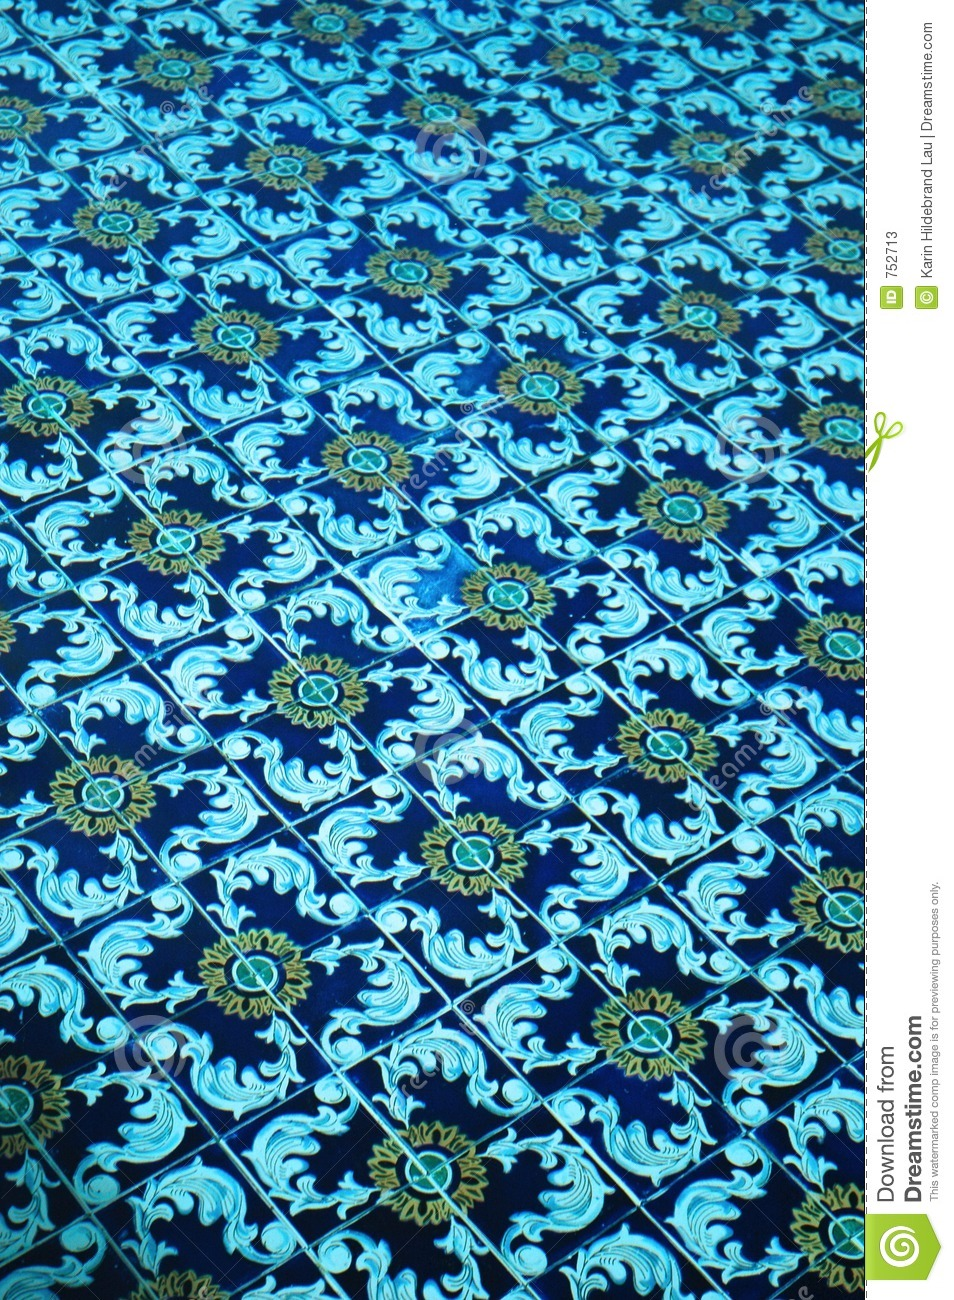 Spanish Tile In Pool Stock Photos  Image 752713